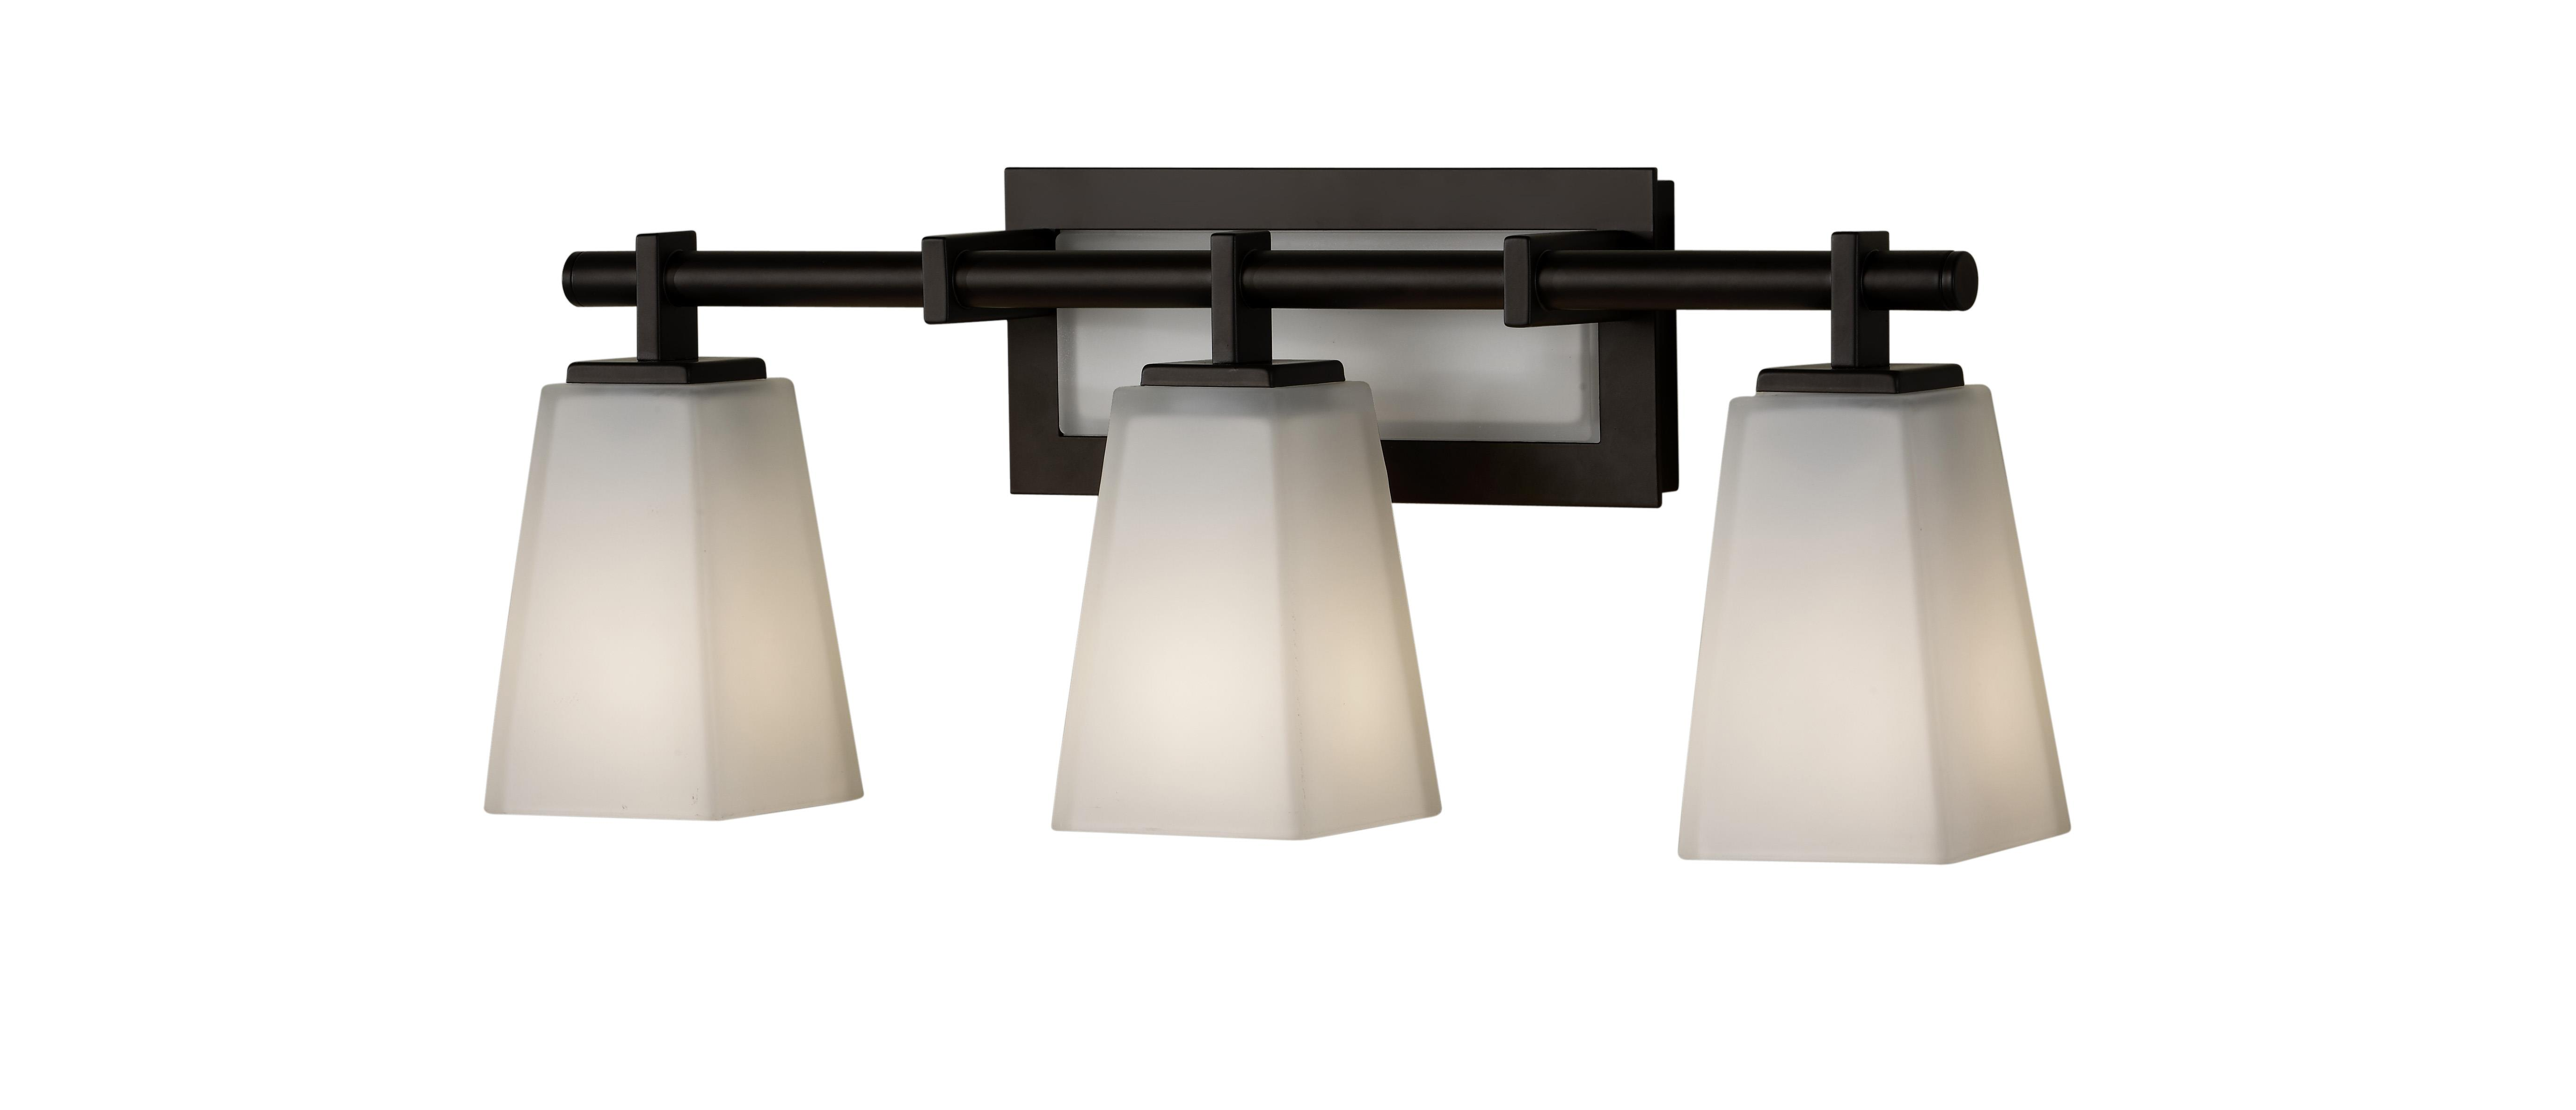 Feiss Bristol 2 Light Vanity Fixture In Oil Rubbed Bronze: Best Home Decorating Ideas